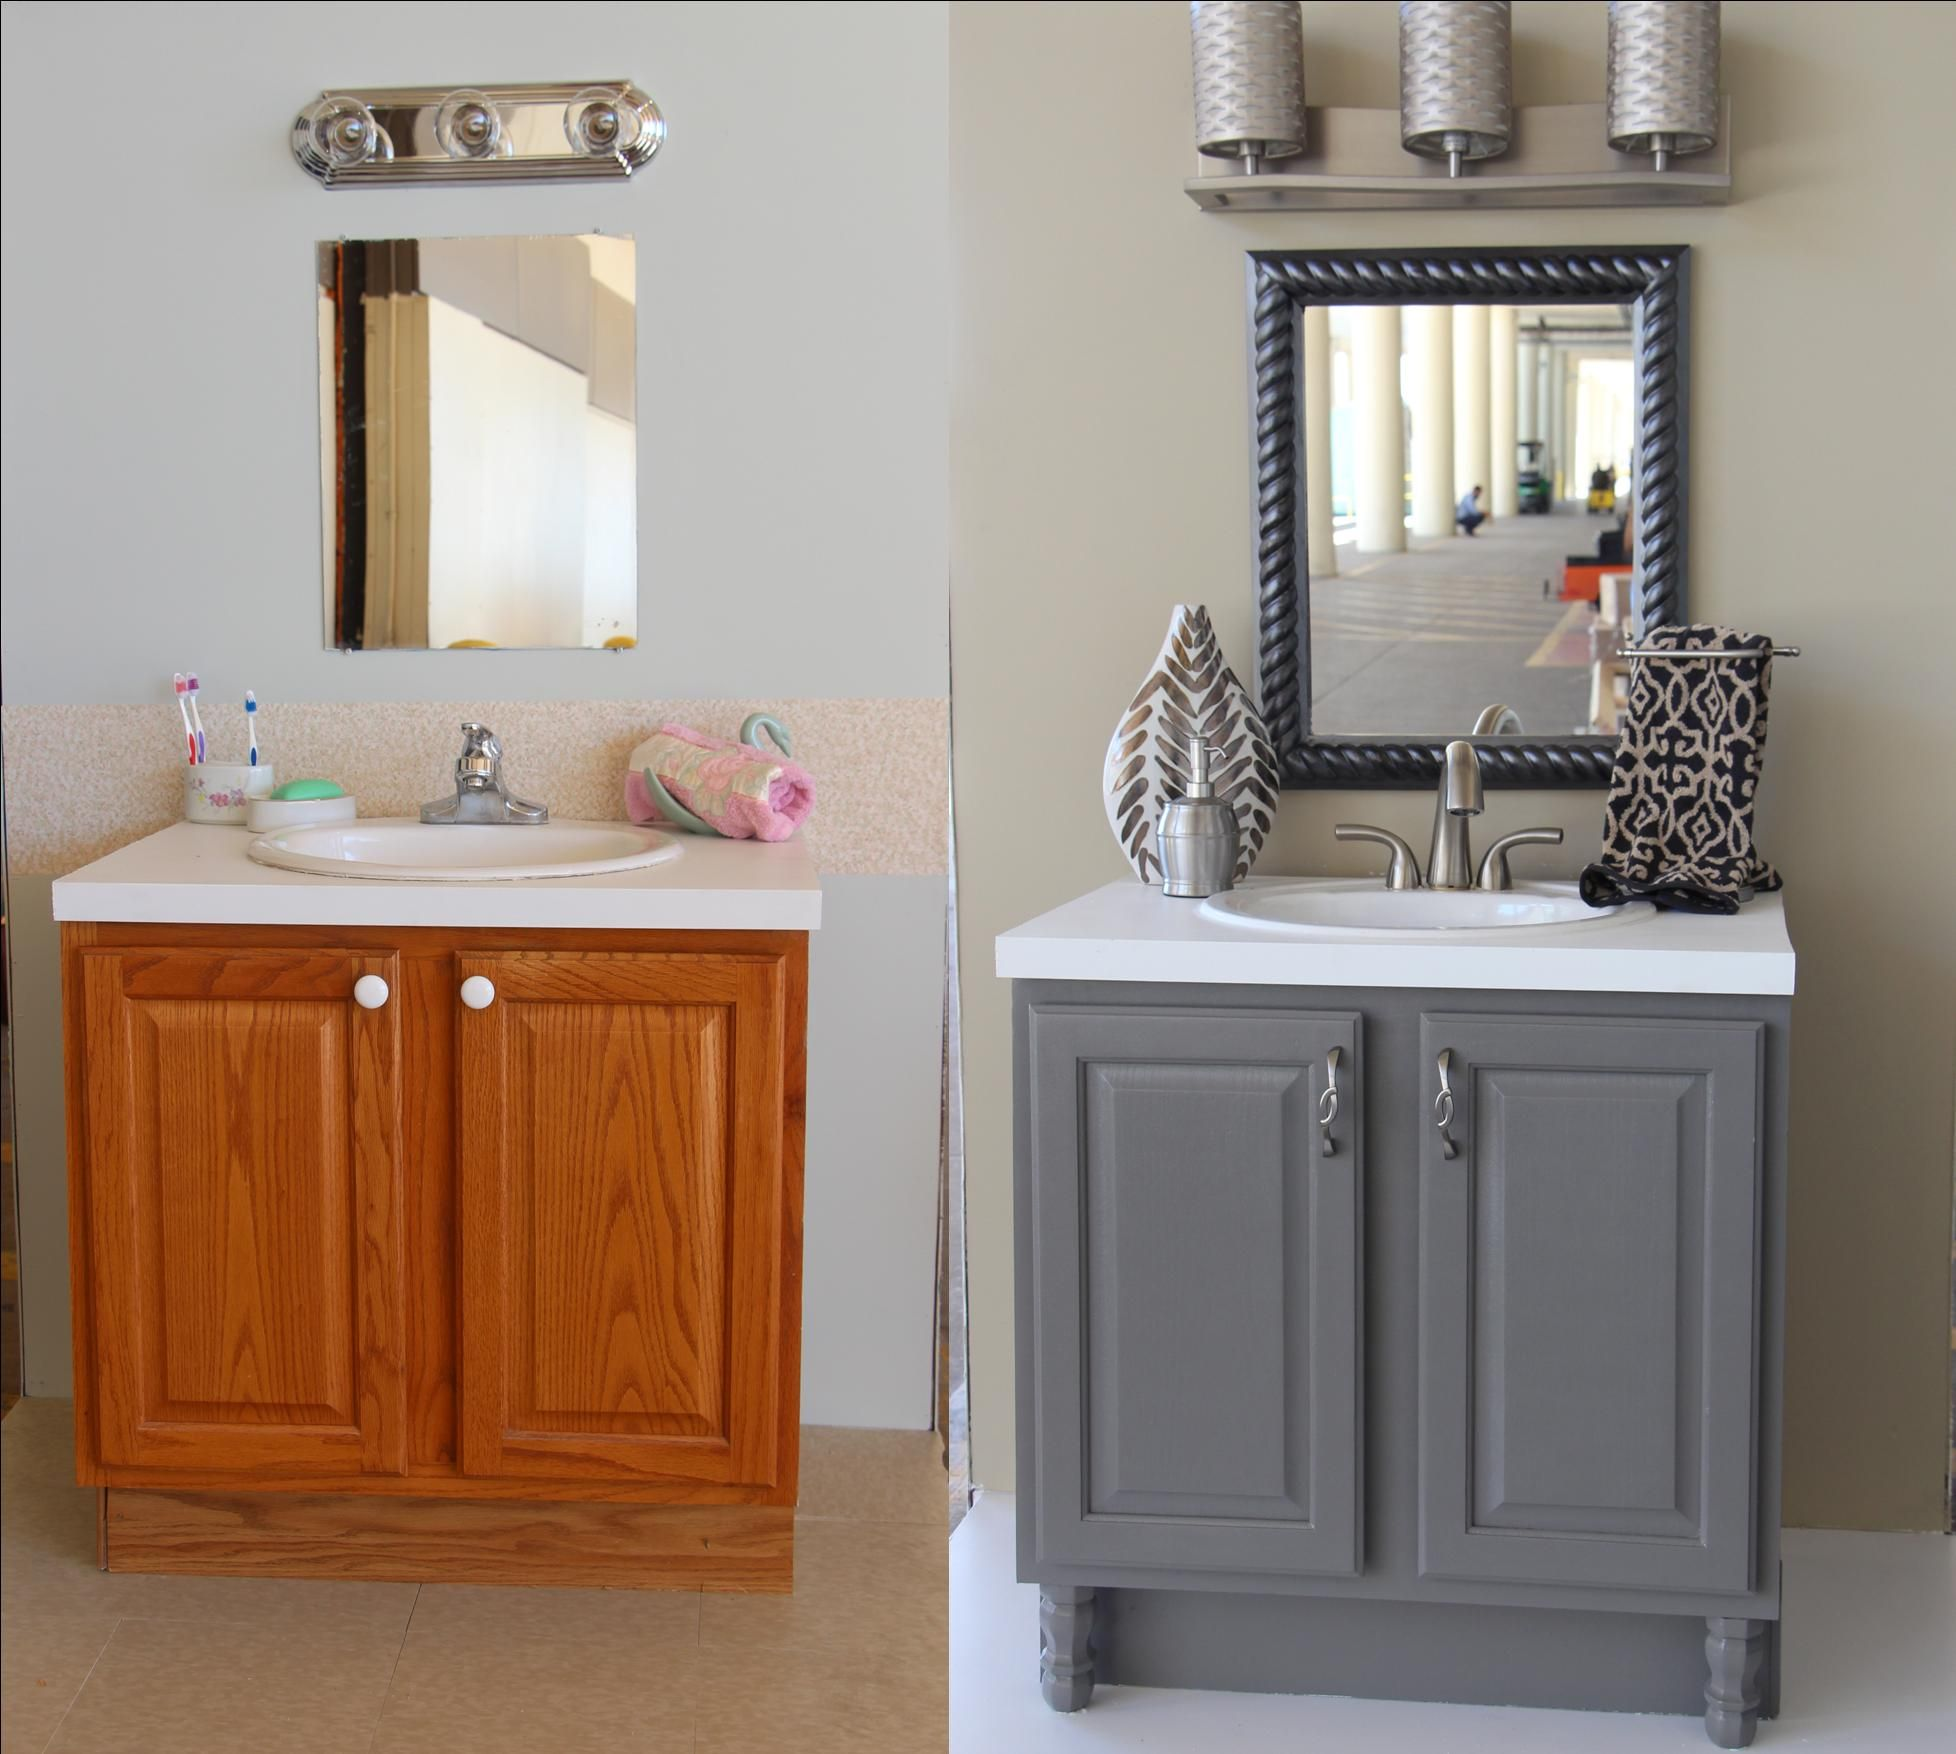 Trendsetter Bath Before And After With Accessories Upcycled Bathroom Ideas